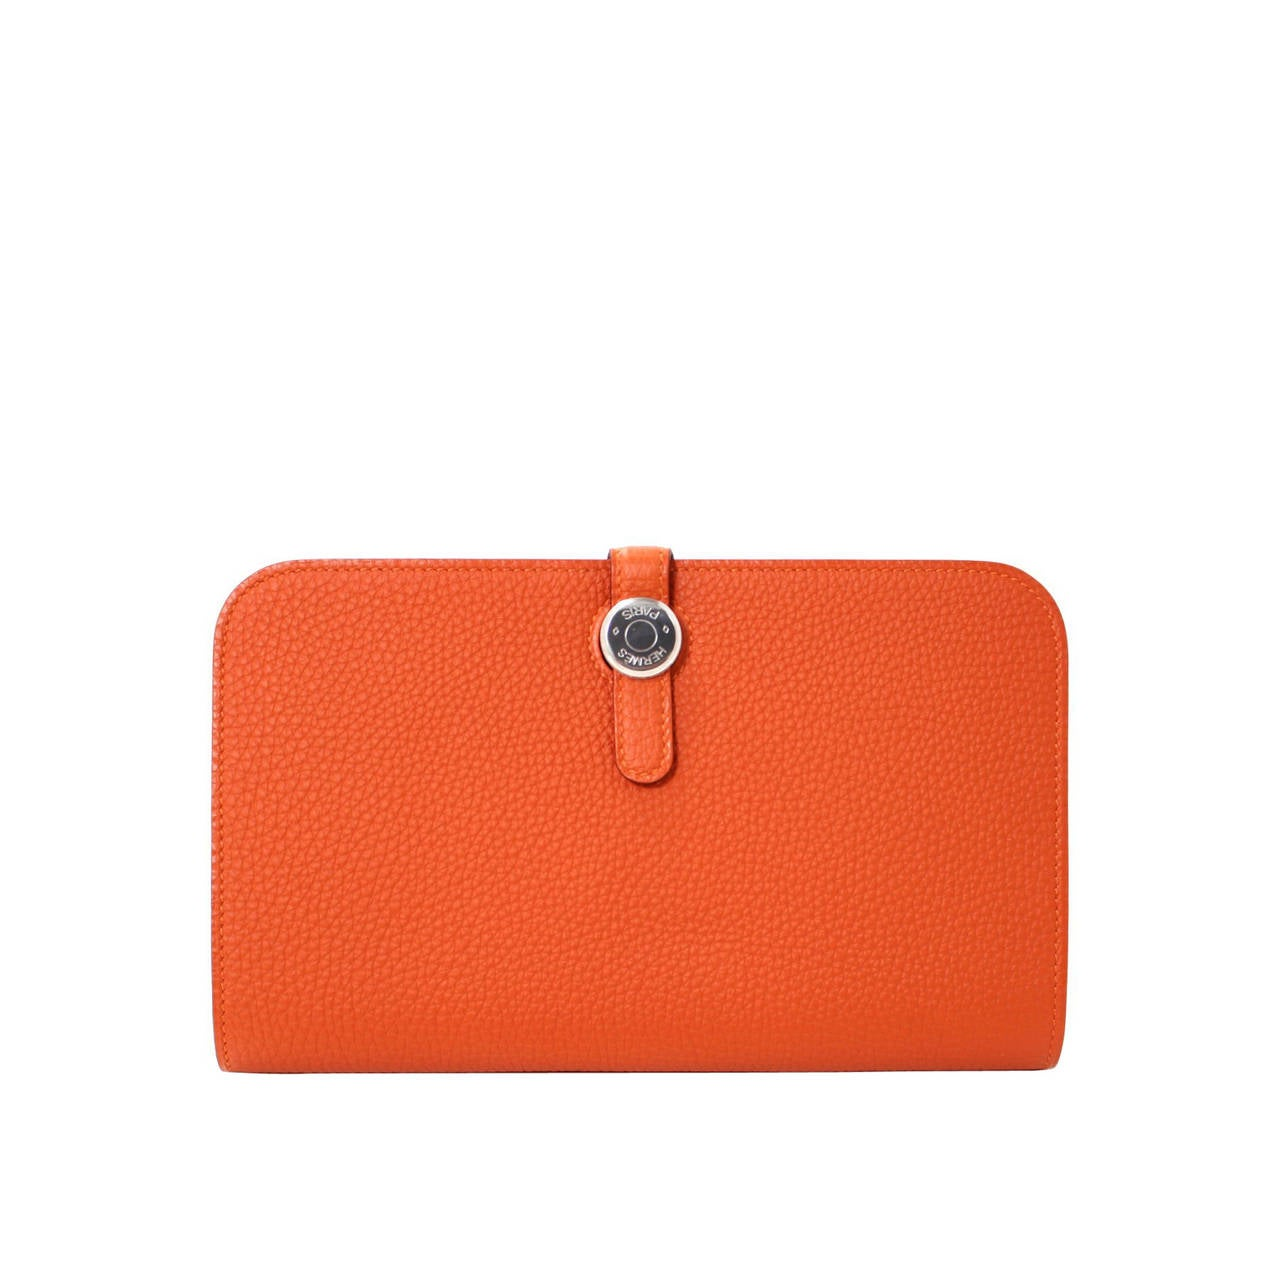 Hermes Orange Duo Wallet Togo With Phw At 1stdibs